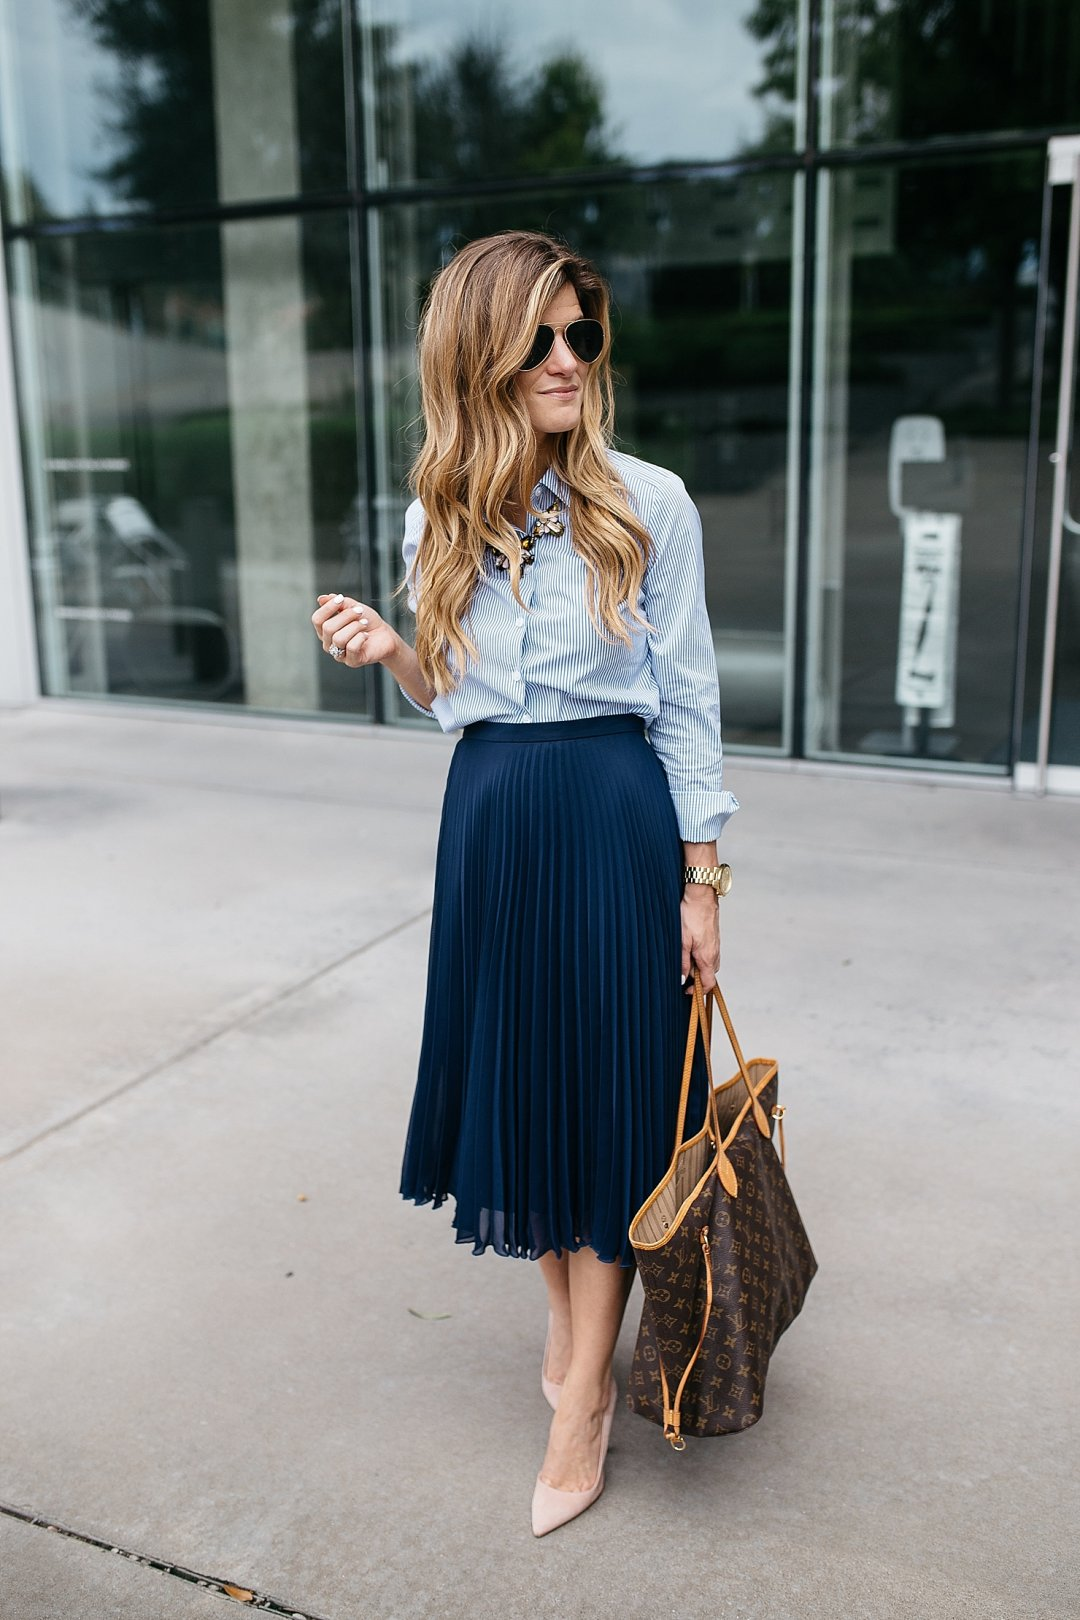 69c4d3d9e3d6 business casual outfit, business professional outfit idea, pleated midi  skirt, navy and blush